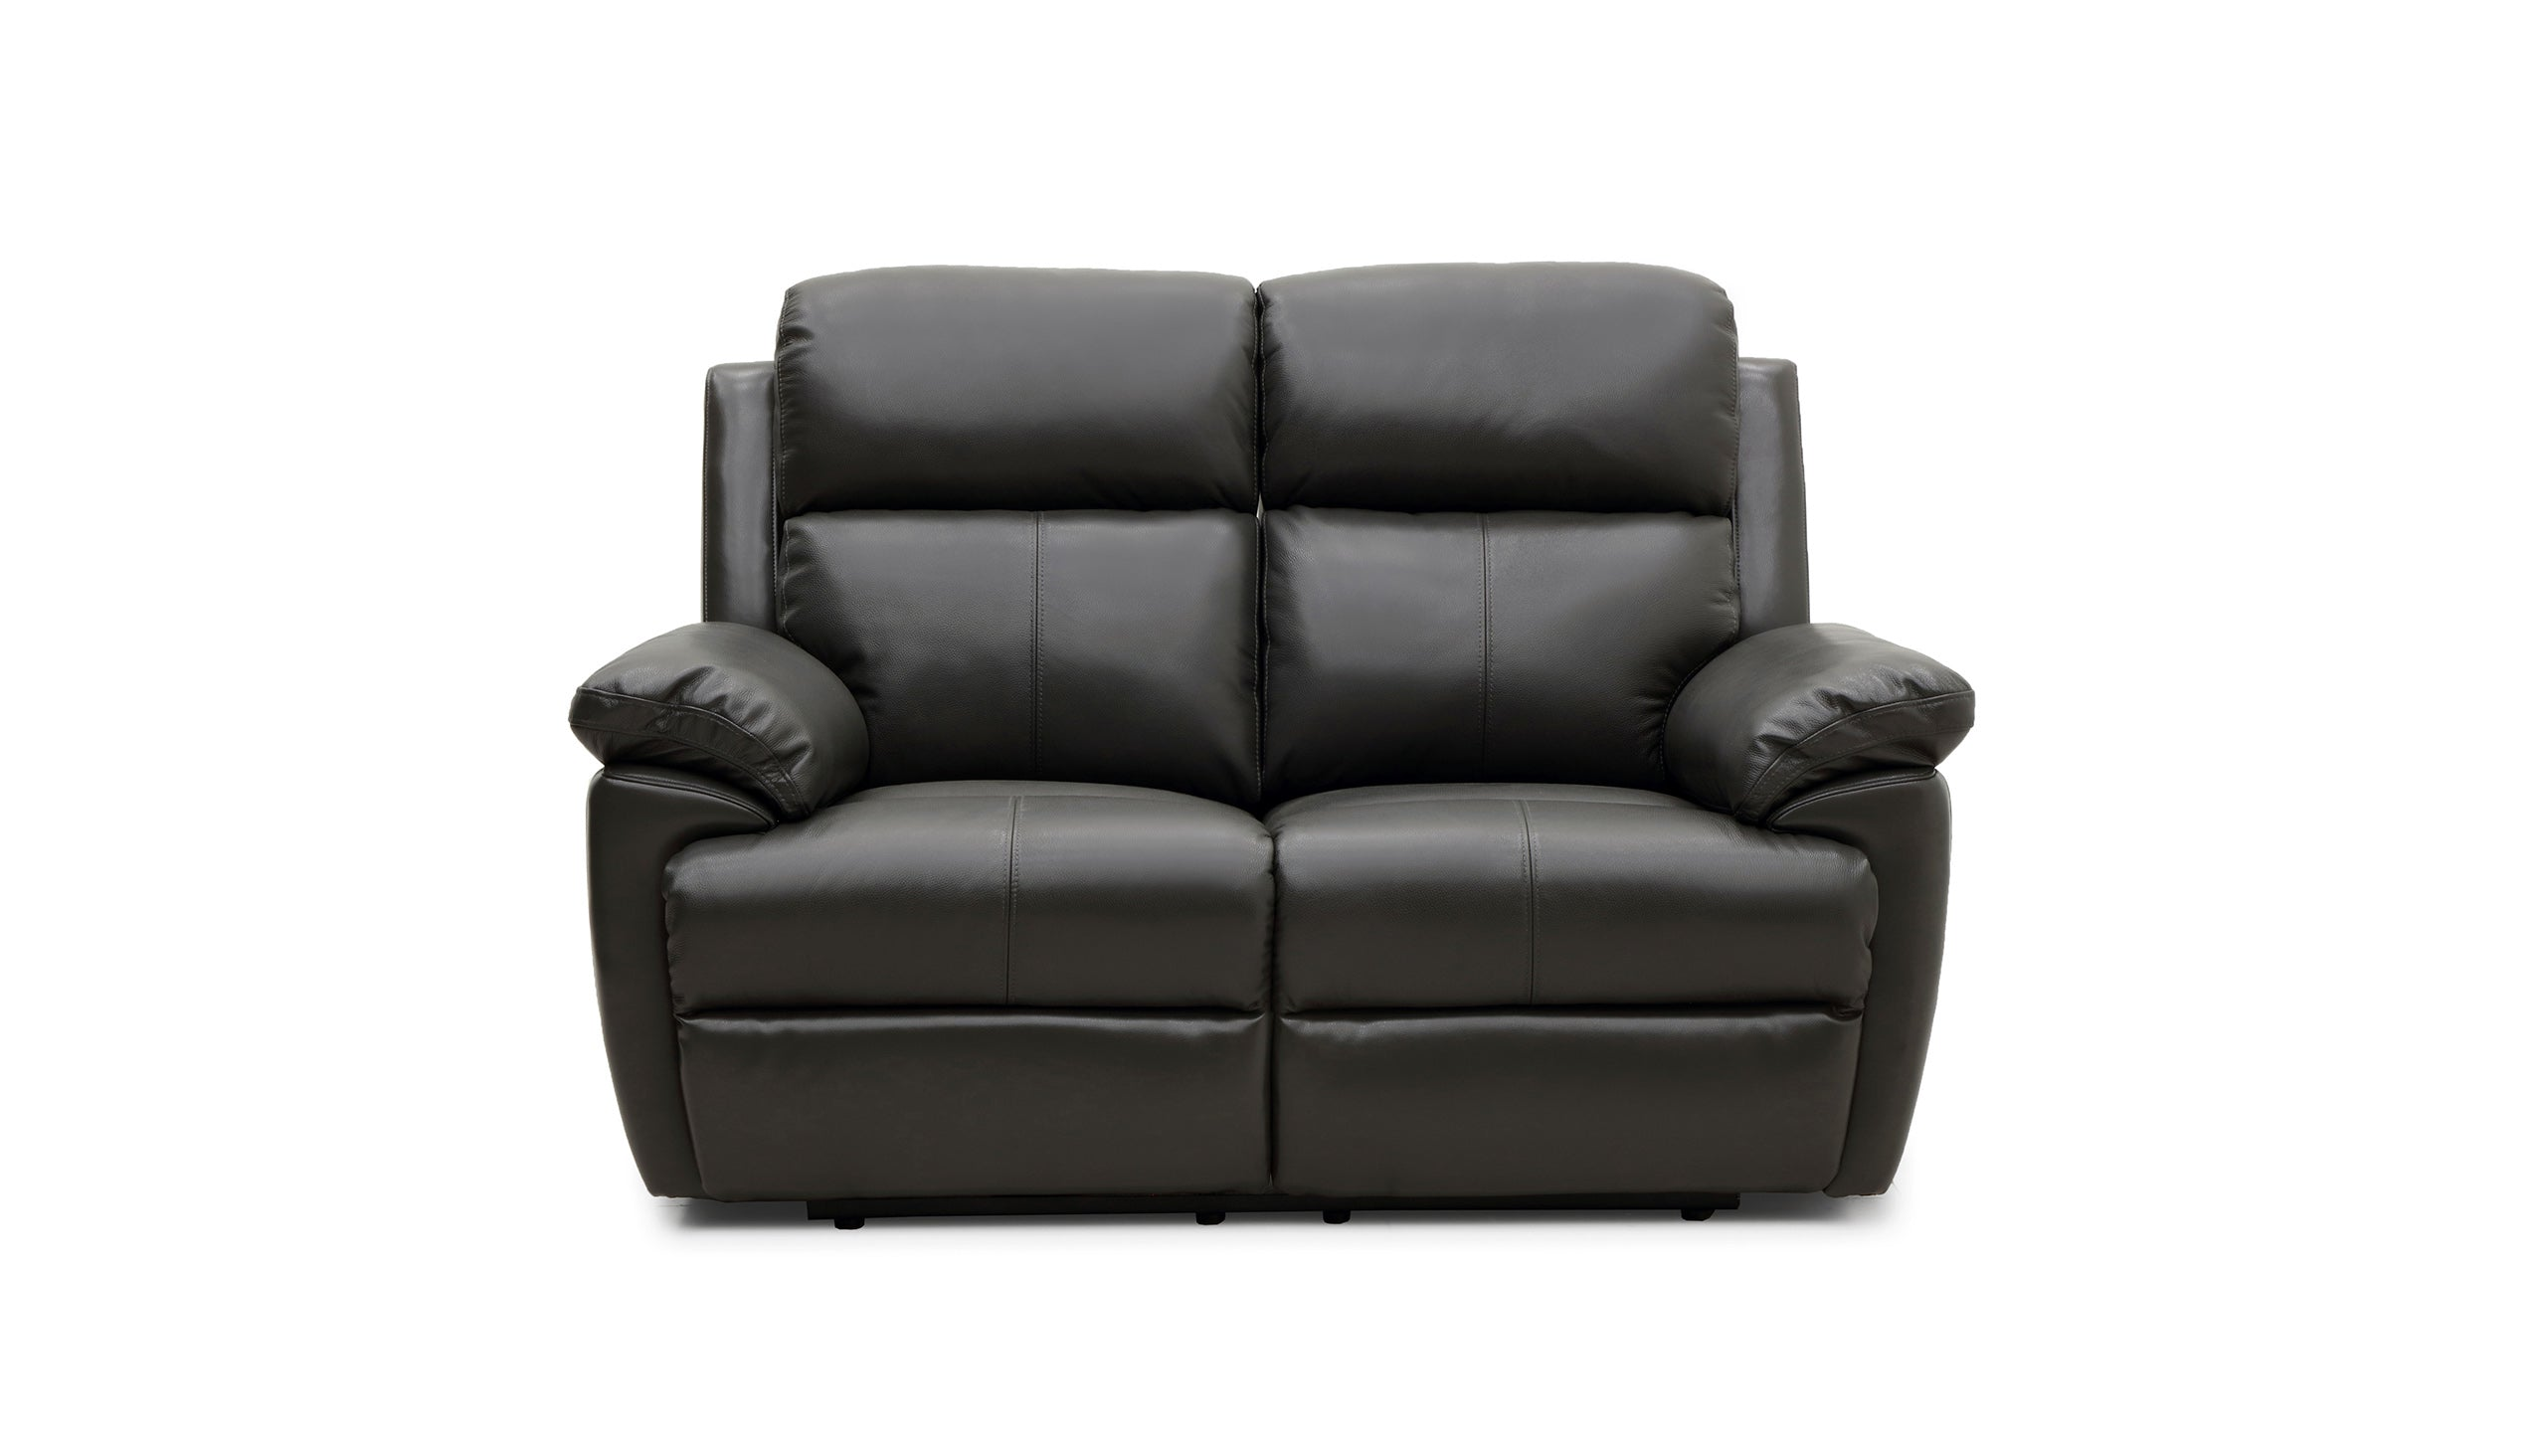 Blair 2 Seater Power Recliner Sofa